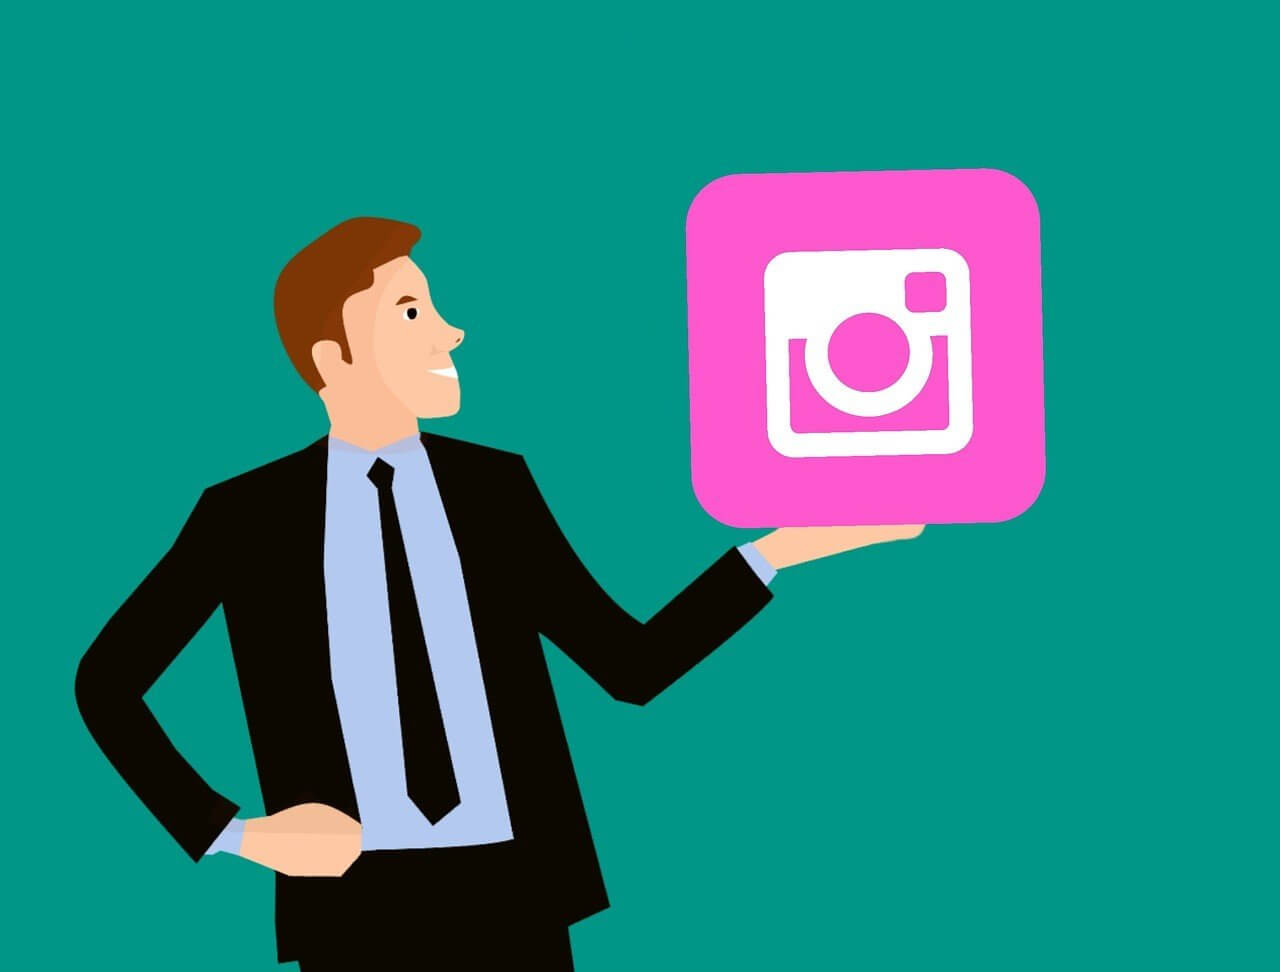 [SUCCESSOR TIPS] How to Start a Business on Instagram with Simple Steps